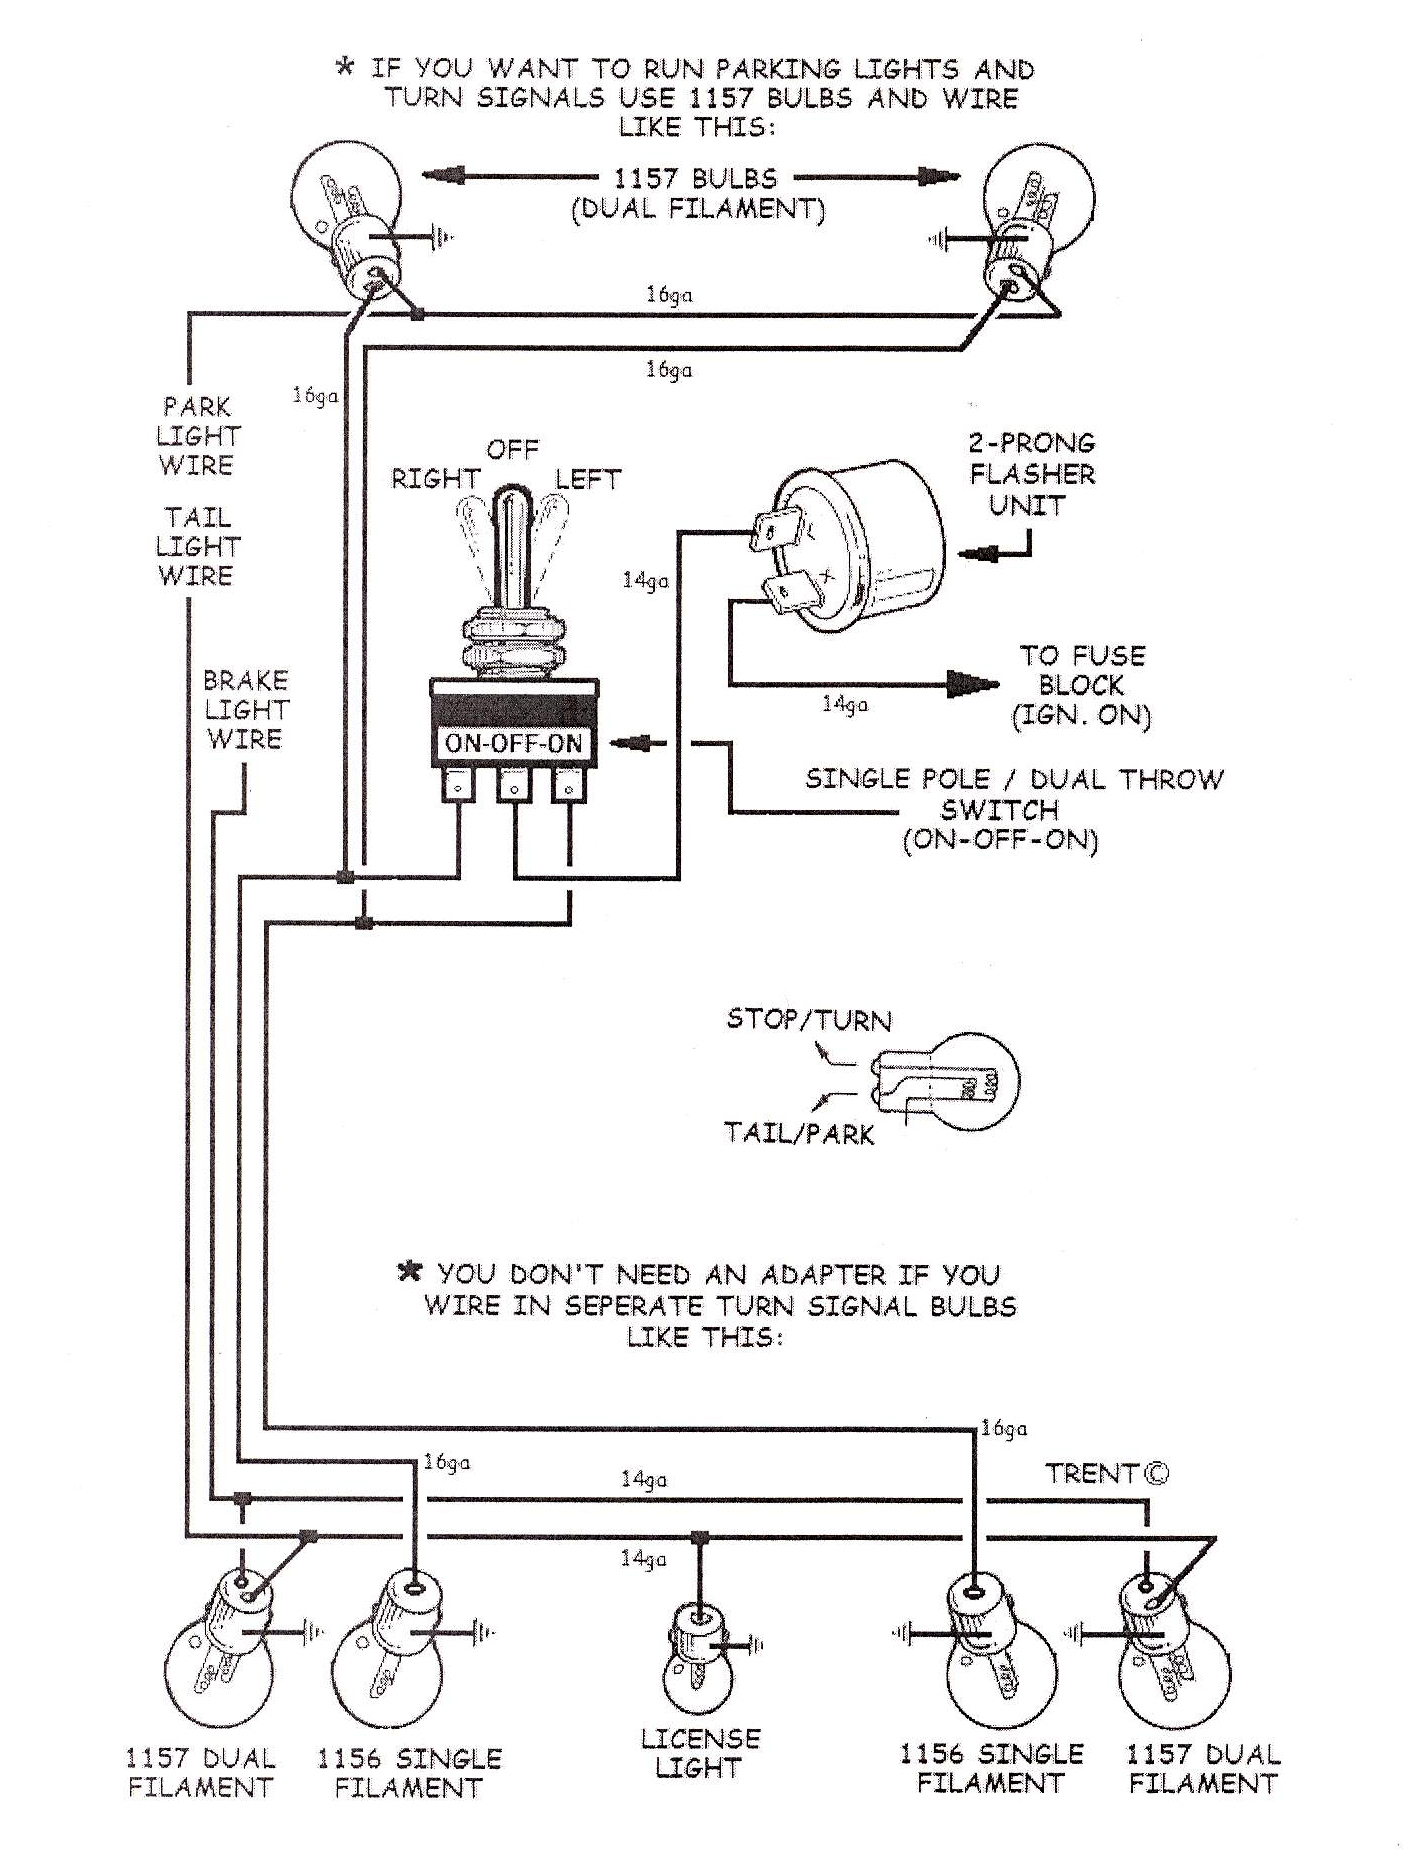 turnsignalwiringdiagram tech tips 1966 chevy truck turn signal wiring diagram at bakdesigns.co